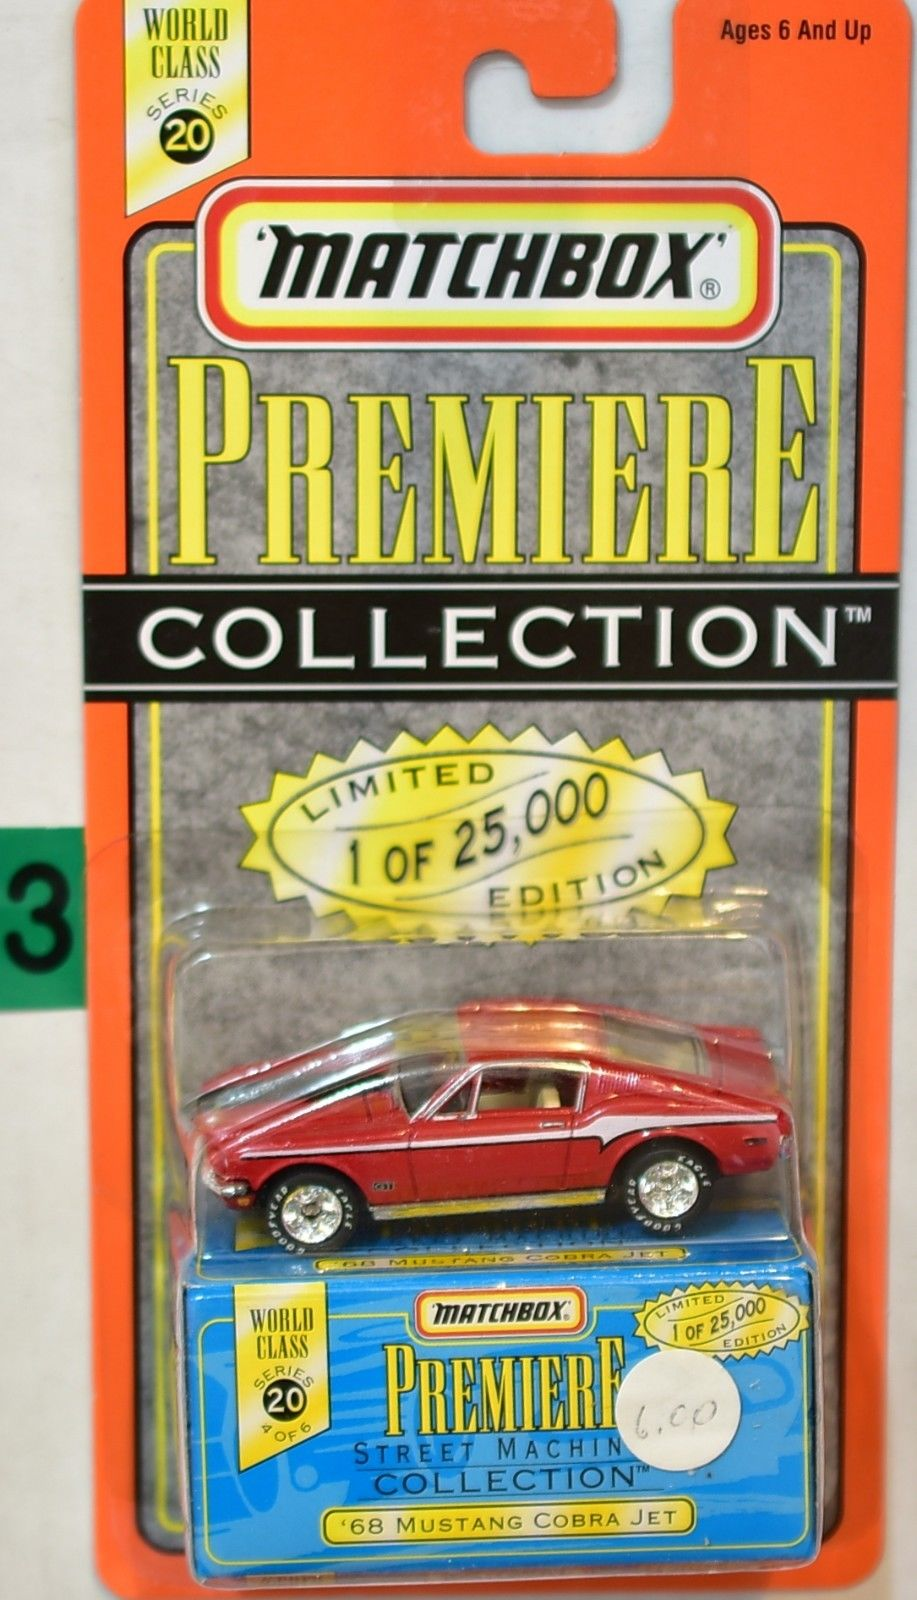 MATCHBOX PREMIERE COLLECTION SERIES 20 '68 MUSTANG COBRA JET RED